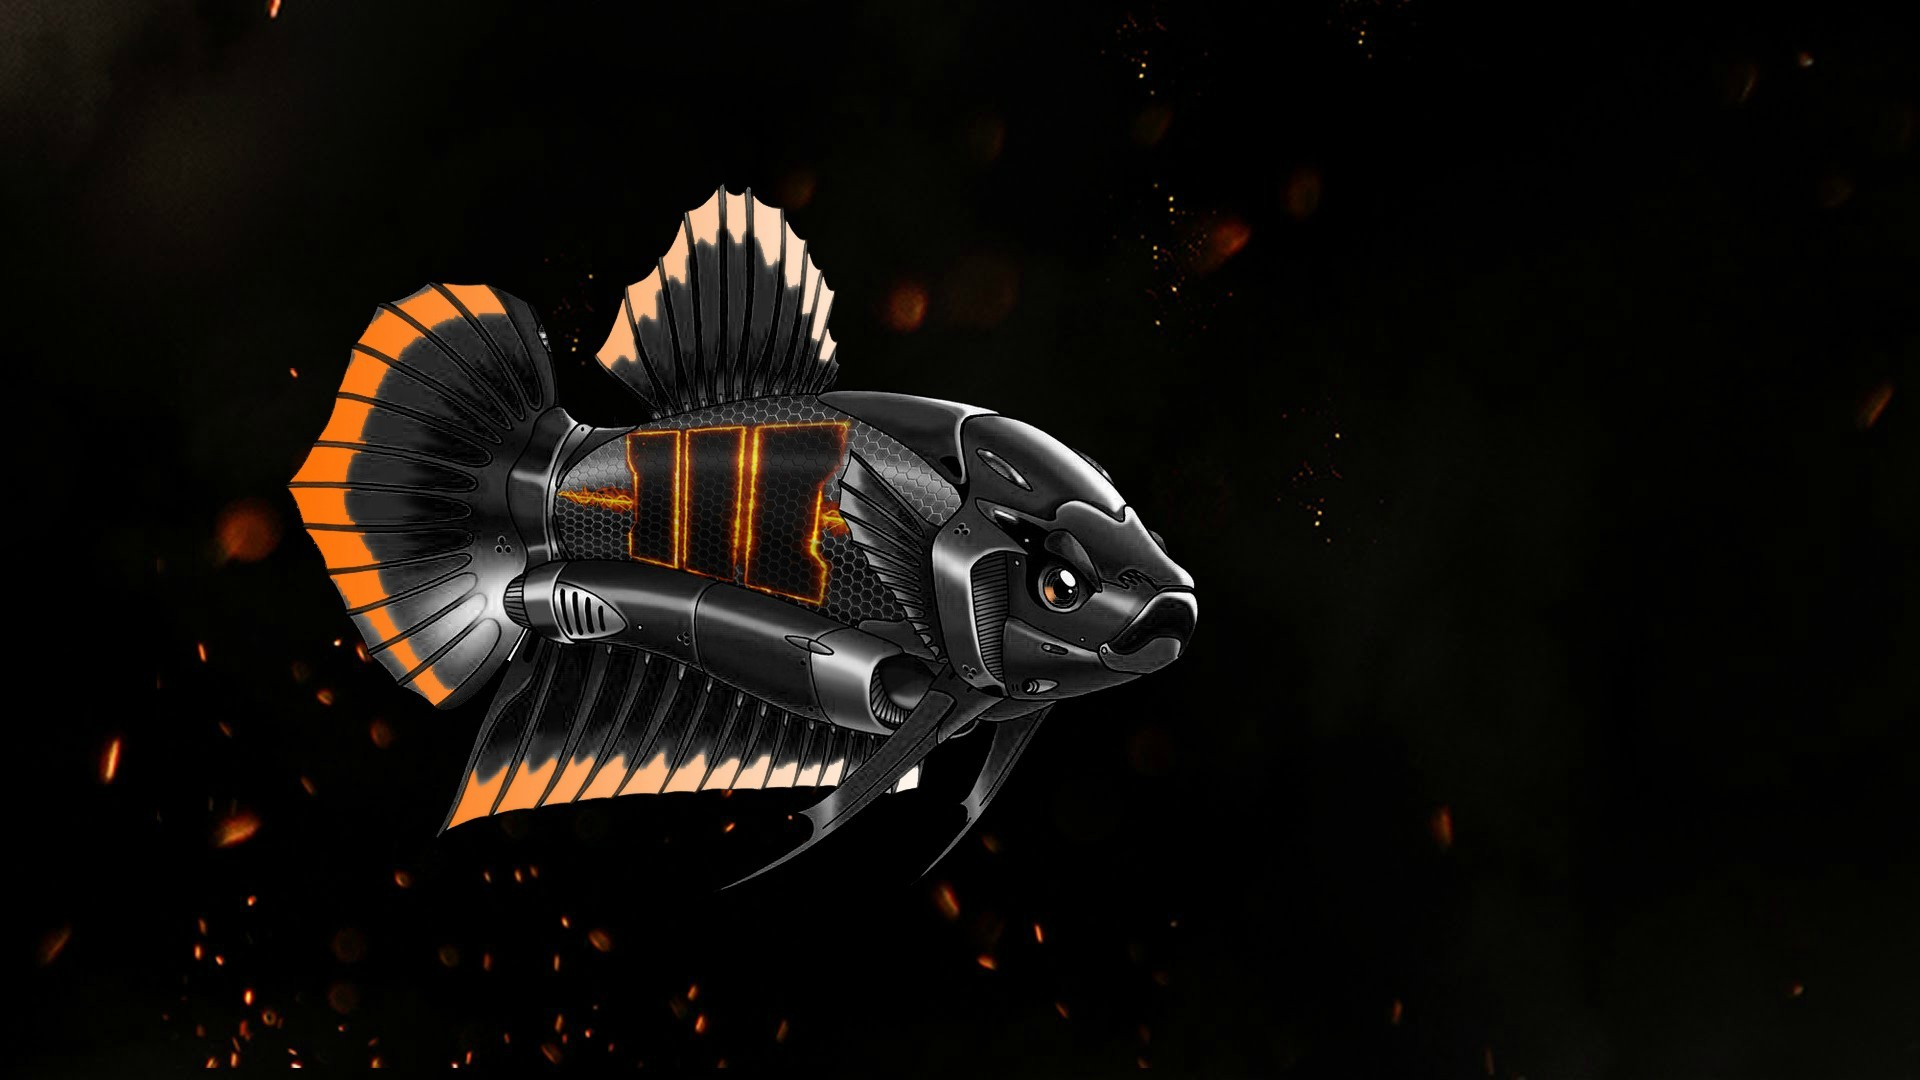 Fighter Fish Hd Wallpaper Download Cool Wallpapers Black Ops 3 81 Images